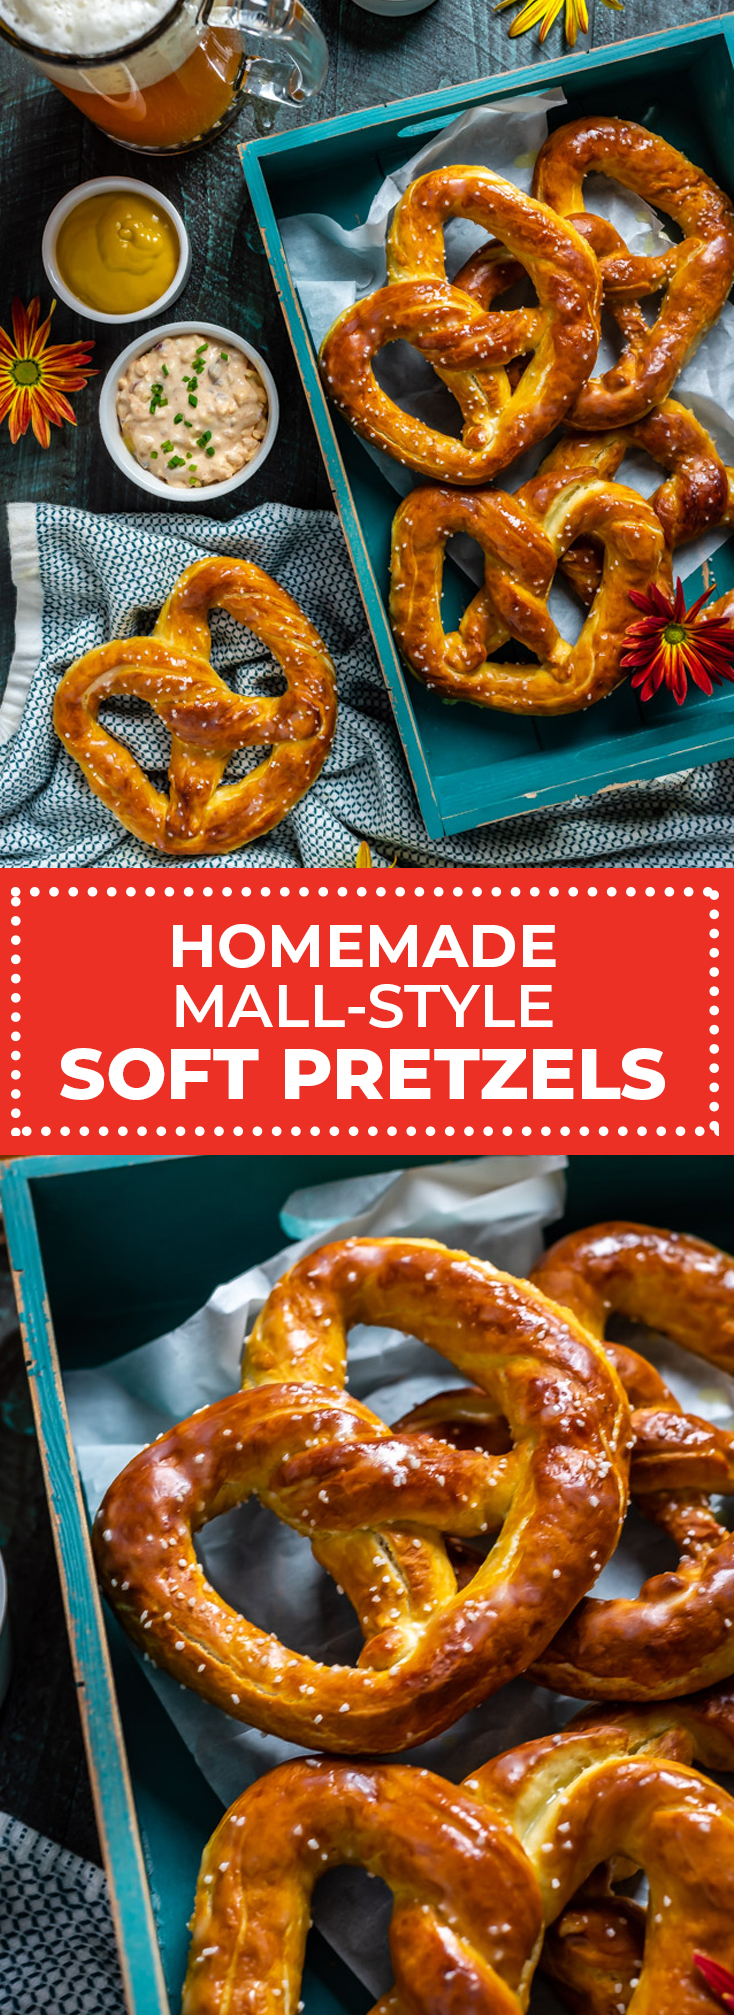 Homemade Mall-Style Soft Pretzels. If you love those golden, buttery mall pretzels, you have to check out this recipe and step-by-step video! | hostthetoast.com